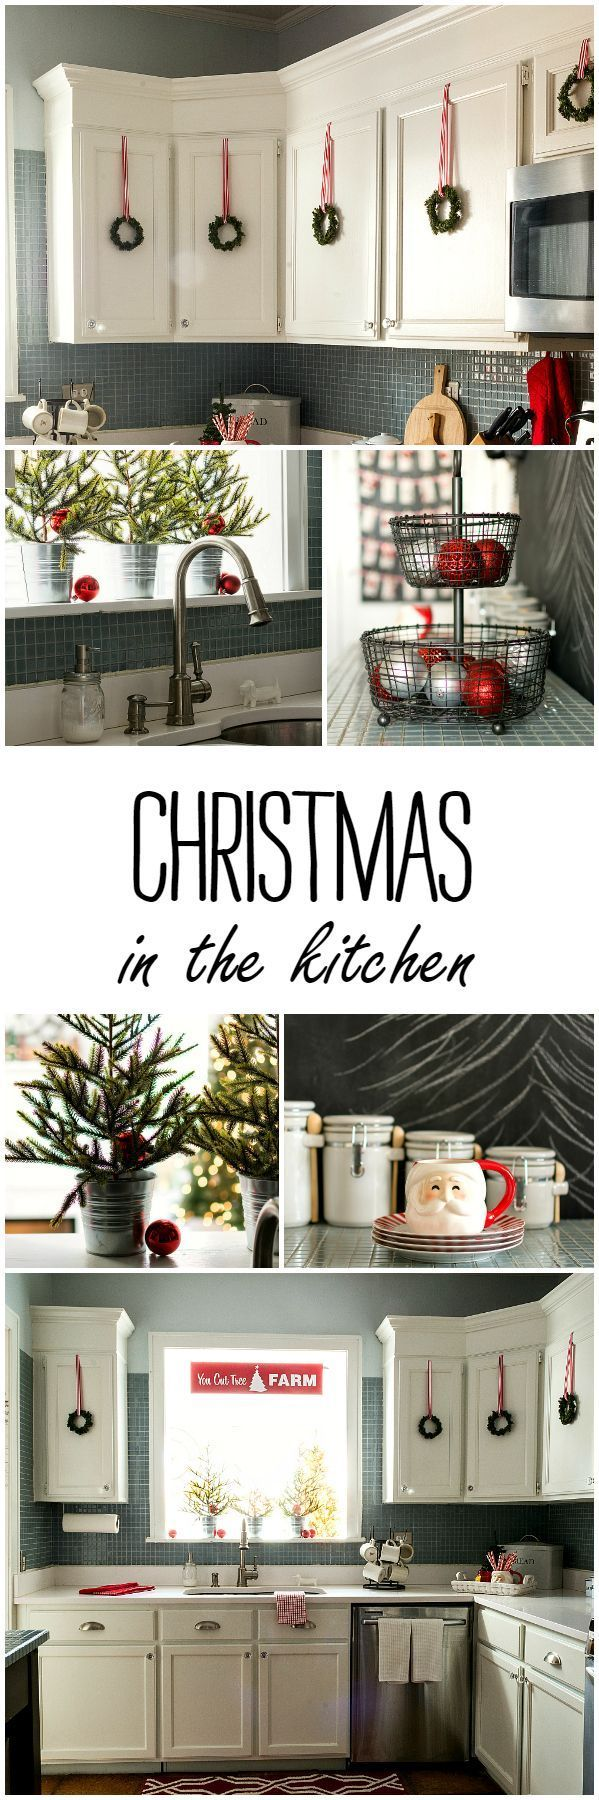 Indoor christmas table decorations - Christmas Kitchen Decorating Ideas